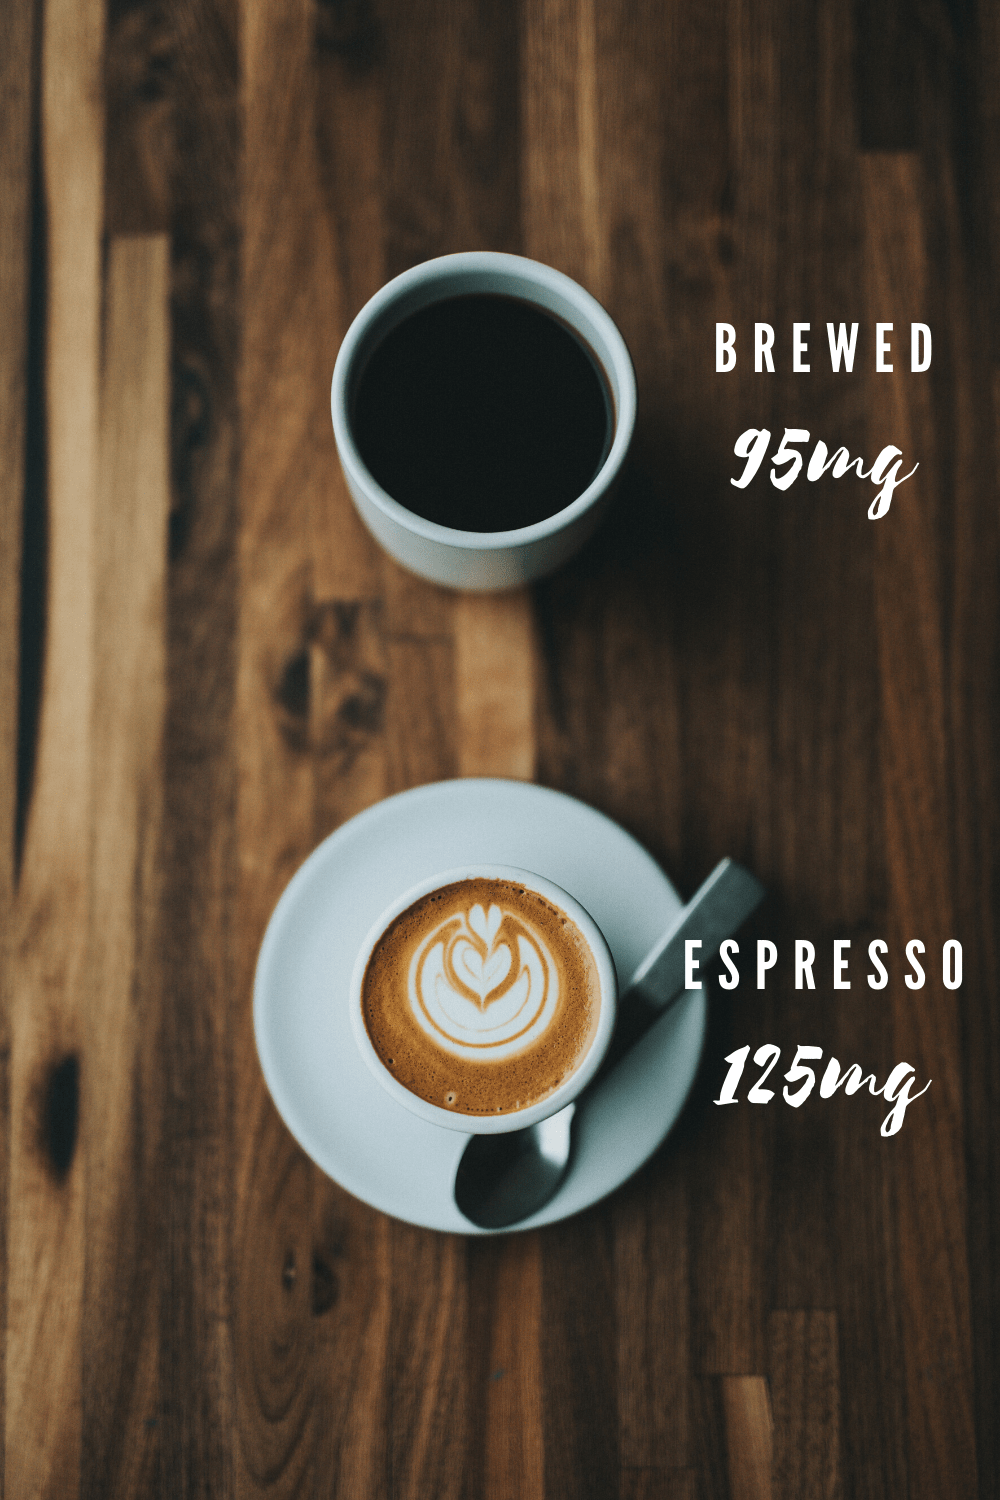 Caffeine in brewed vs espresso based coffees